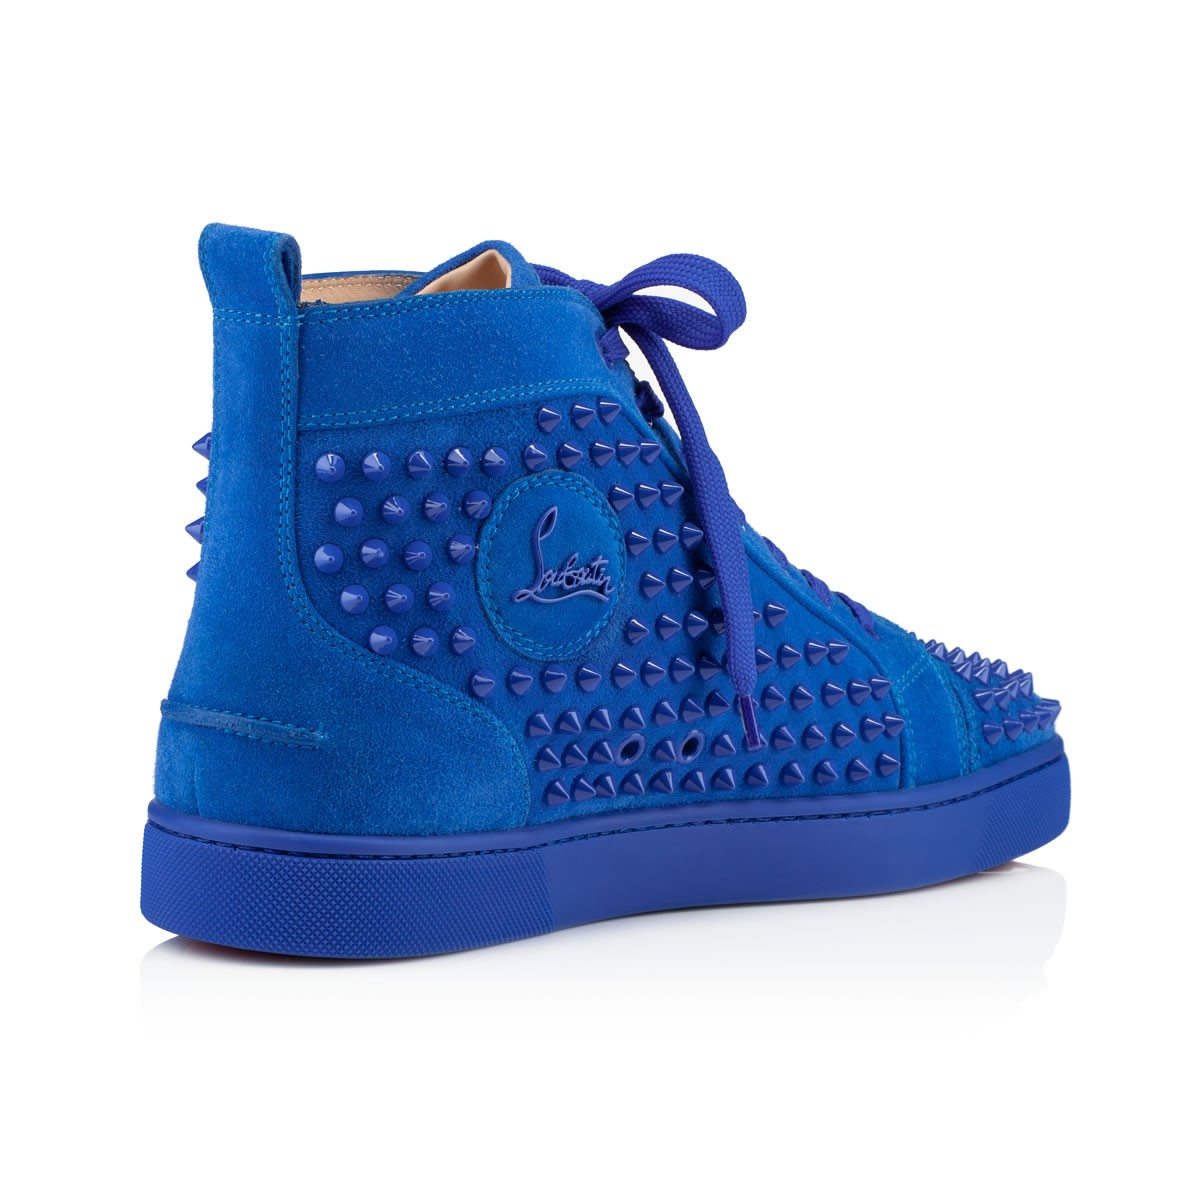 28467c191b84 Lyst - Christian Louboutin Men s Louis Flat Sneakers in Blue for Men